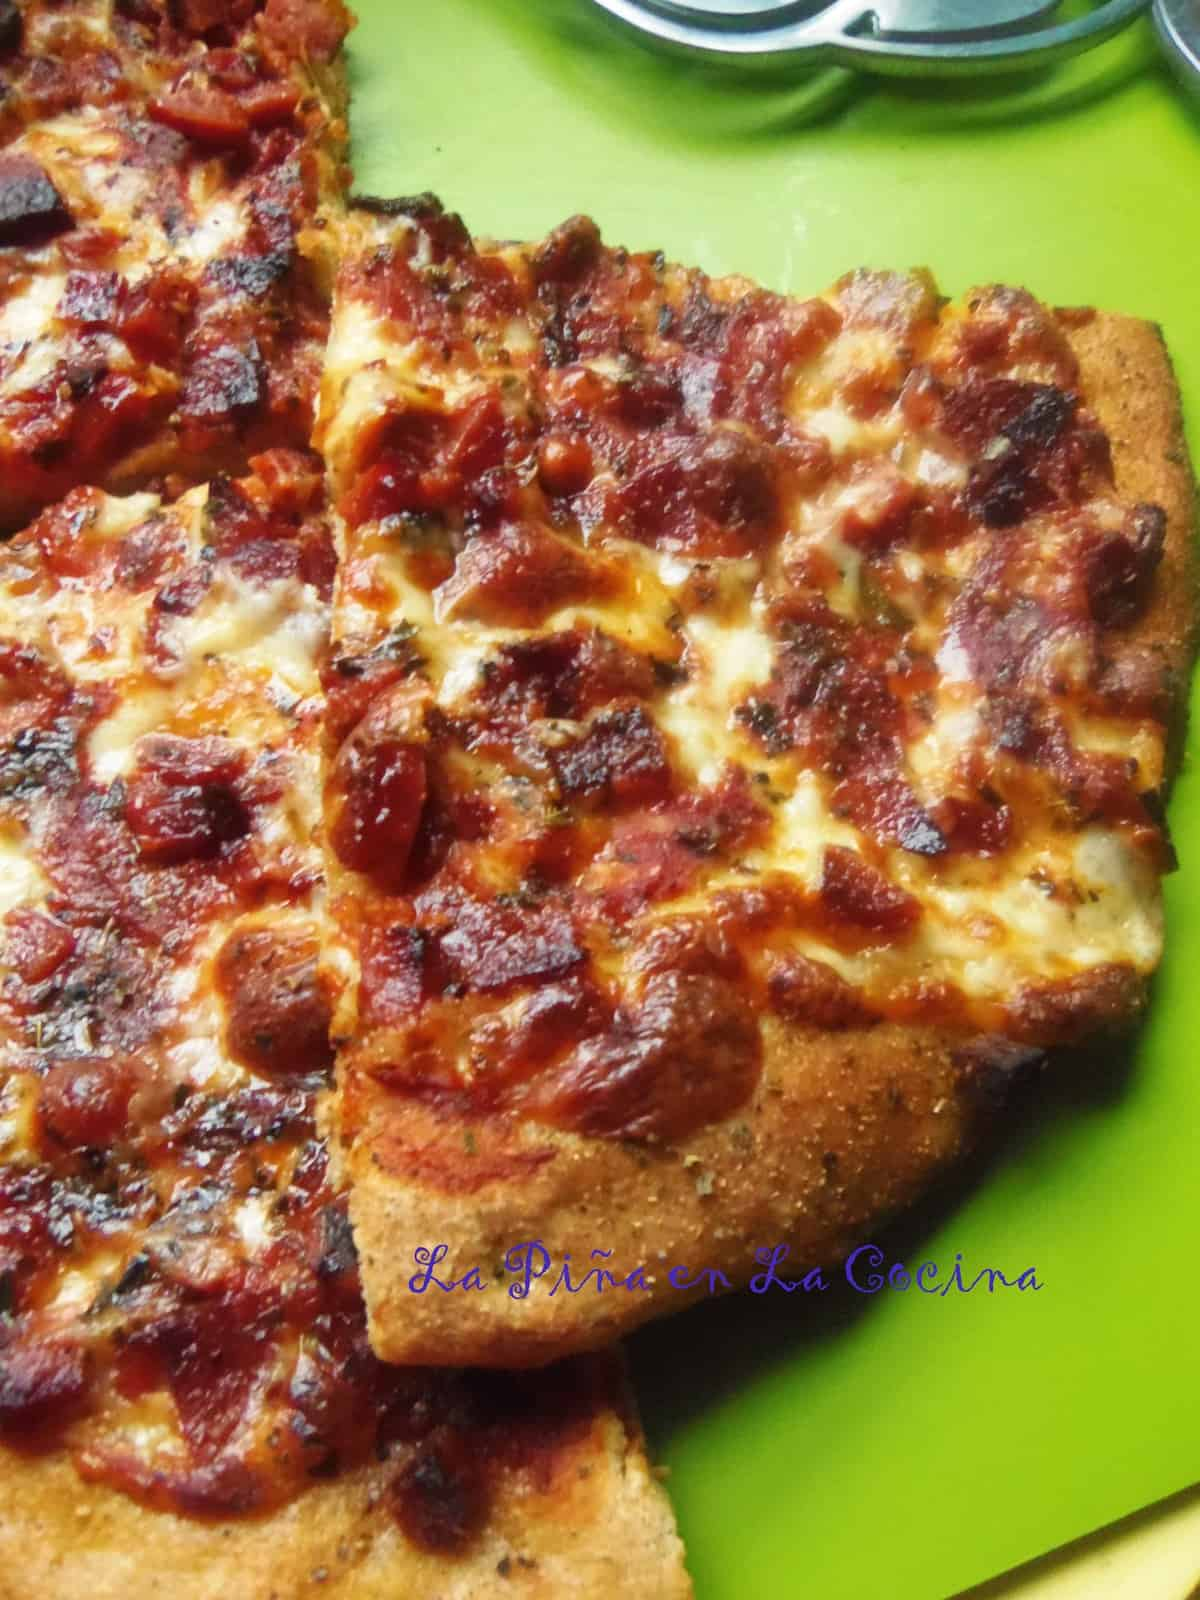 For the first pizza, I did not stuff the crust with cheese and just added cheese, sauce and chopped pepperoni. My husband's favorite!